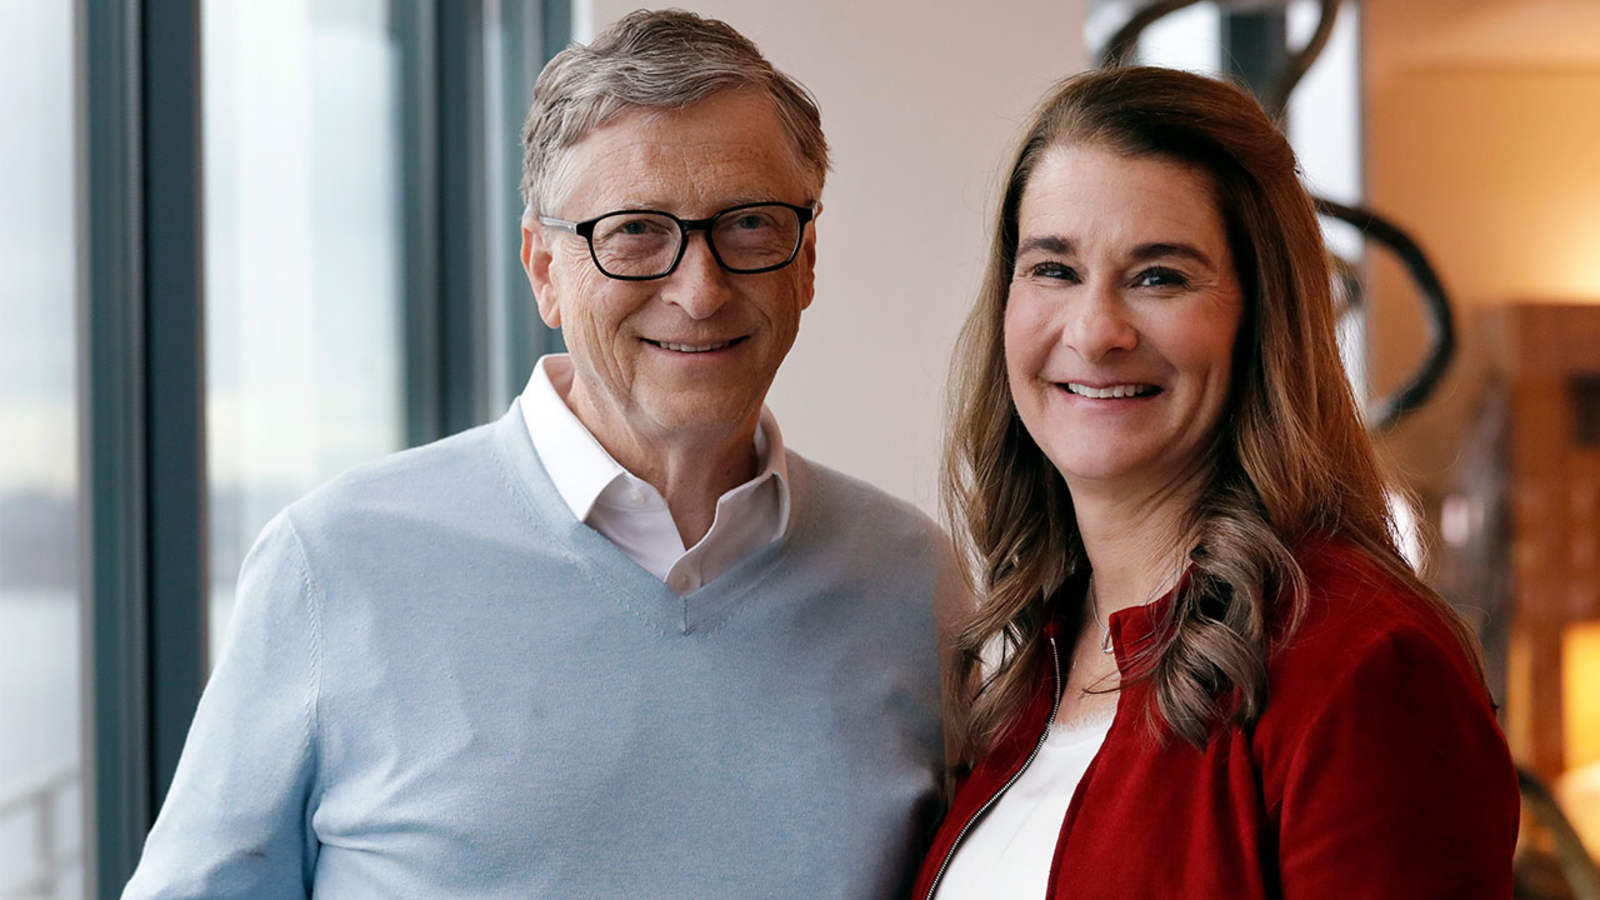 Bill and Melinda Gates to divorce after 27 yrs of marriage